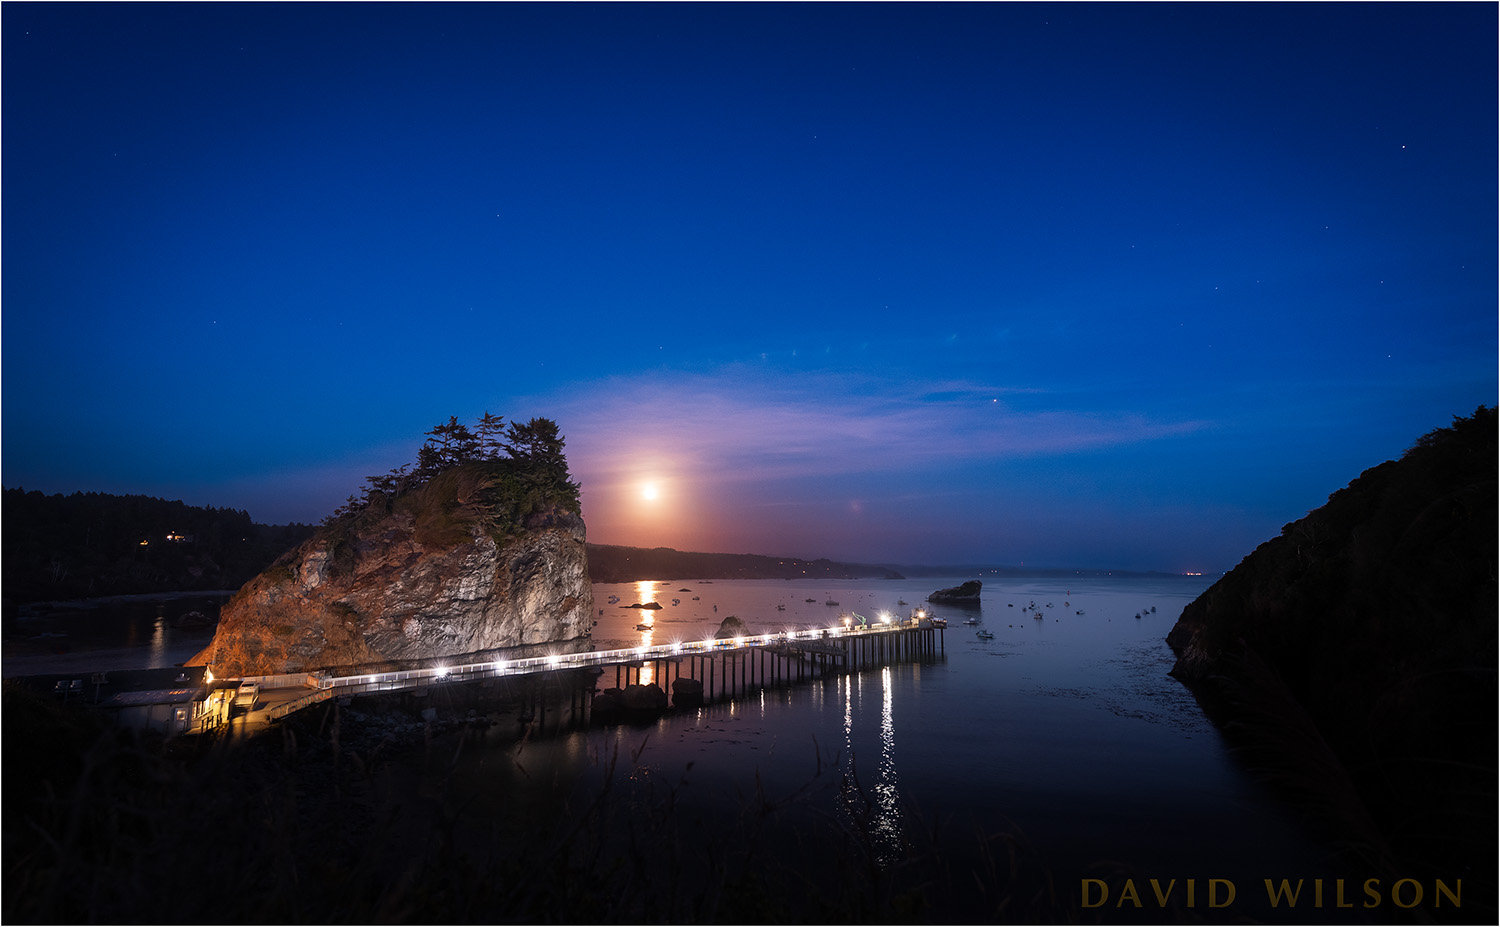 The full moon rises over Trinidad Harbor and Pier, August 2018.